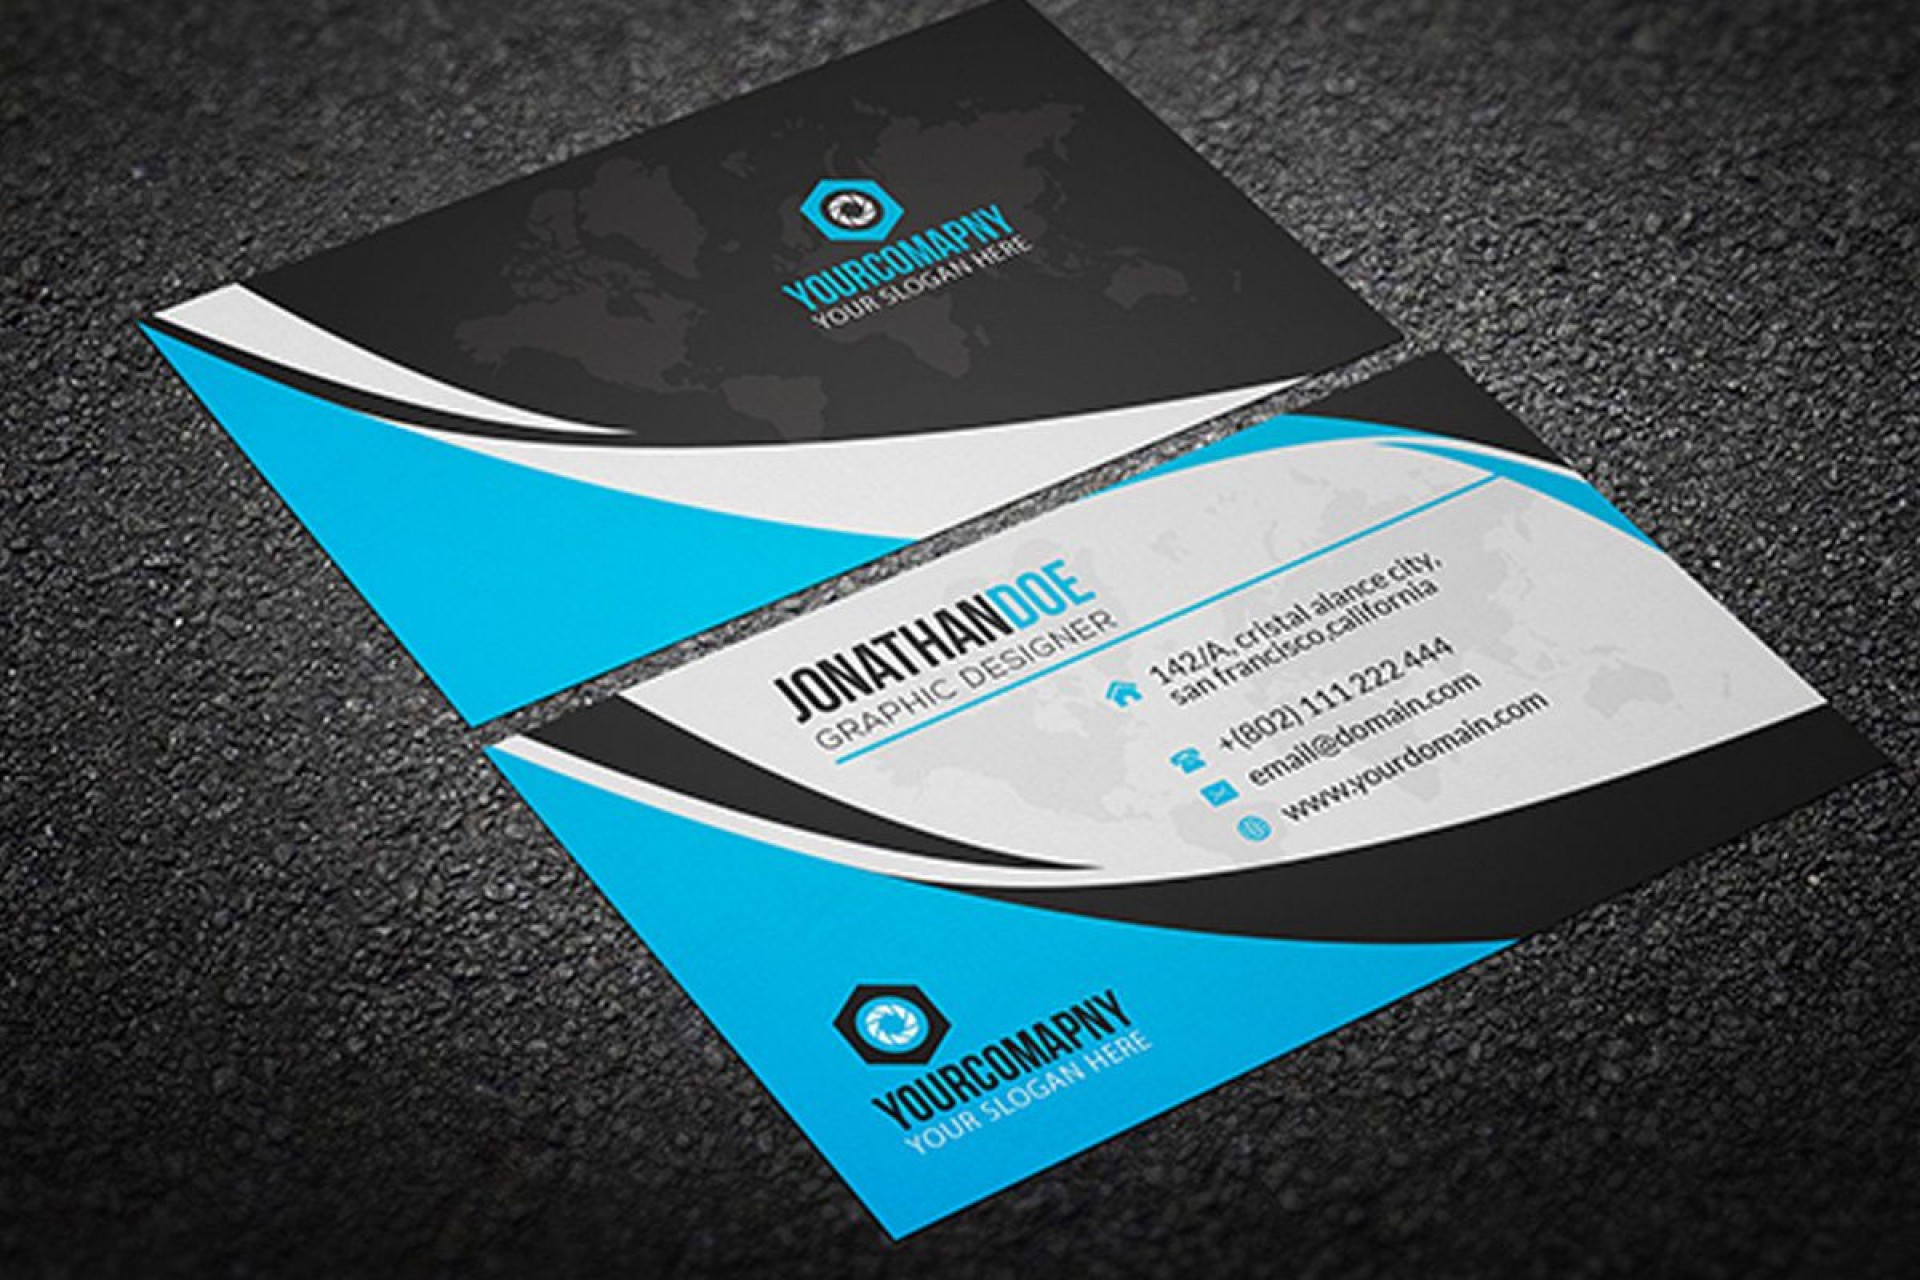 001 Outstanding Free Photoshop Busines Card Template High Resolution  Blank Download Adobe Psd Mockup1920